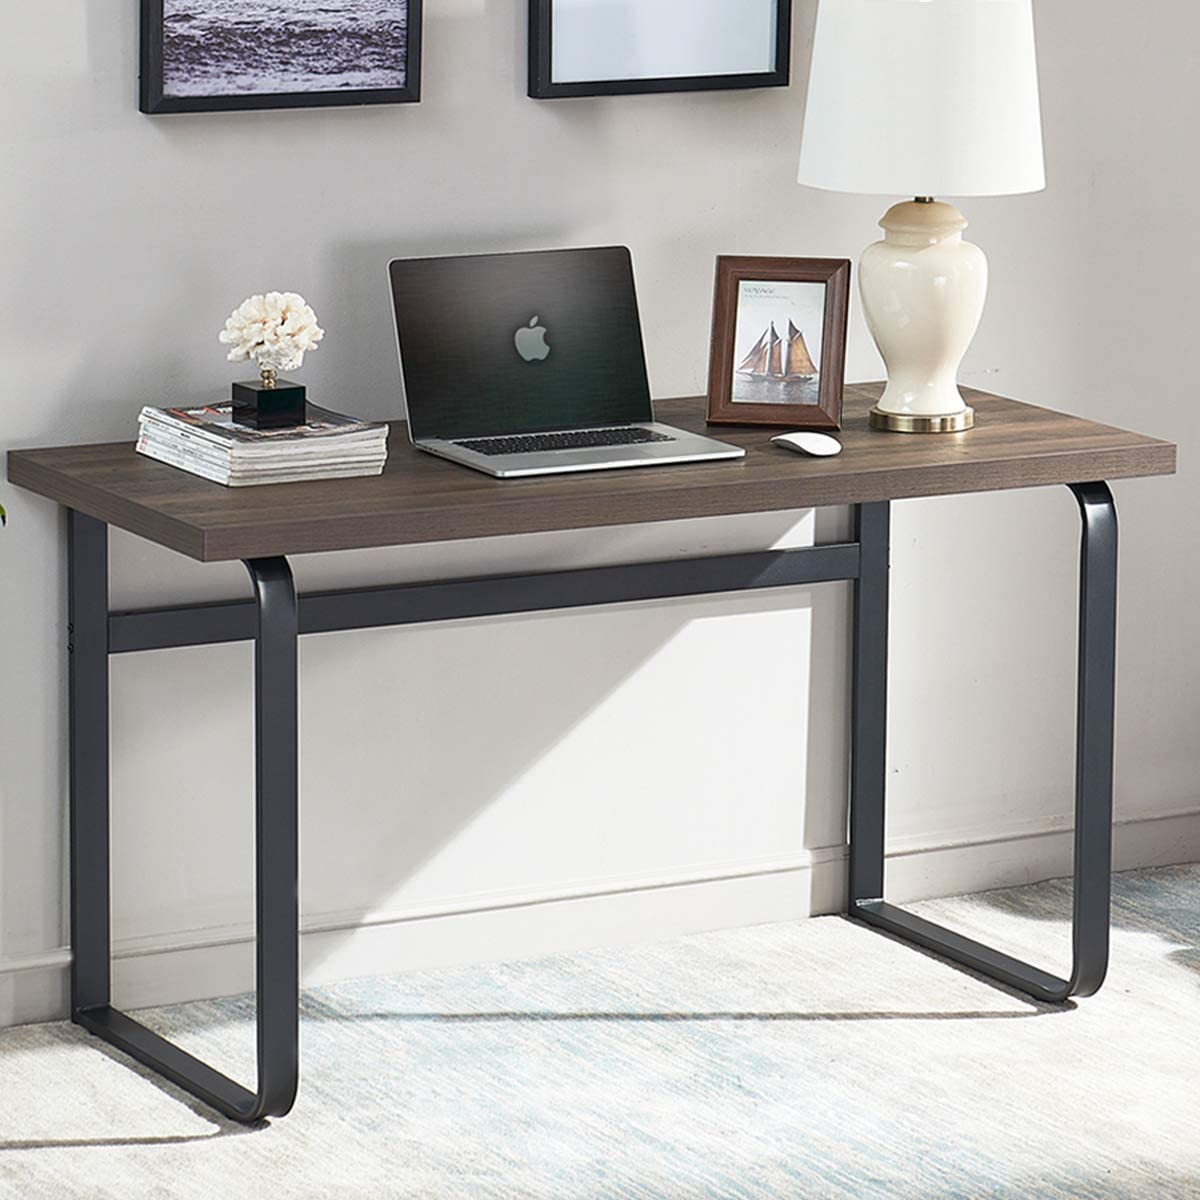 SHOCOKO Computer Desk, Industrial Wood and Metal Writing Desk, Rustic Study Table for Home Office, 55 inch